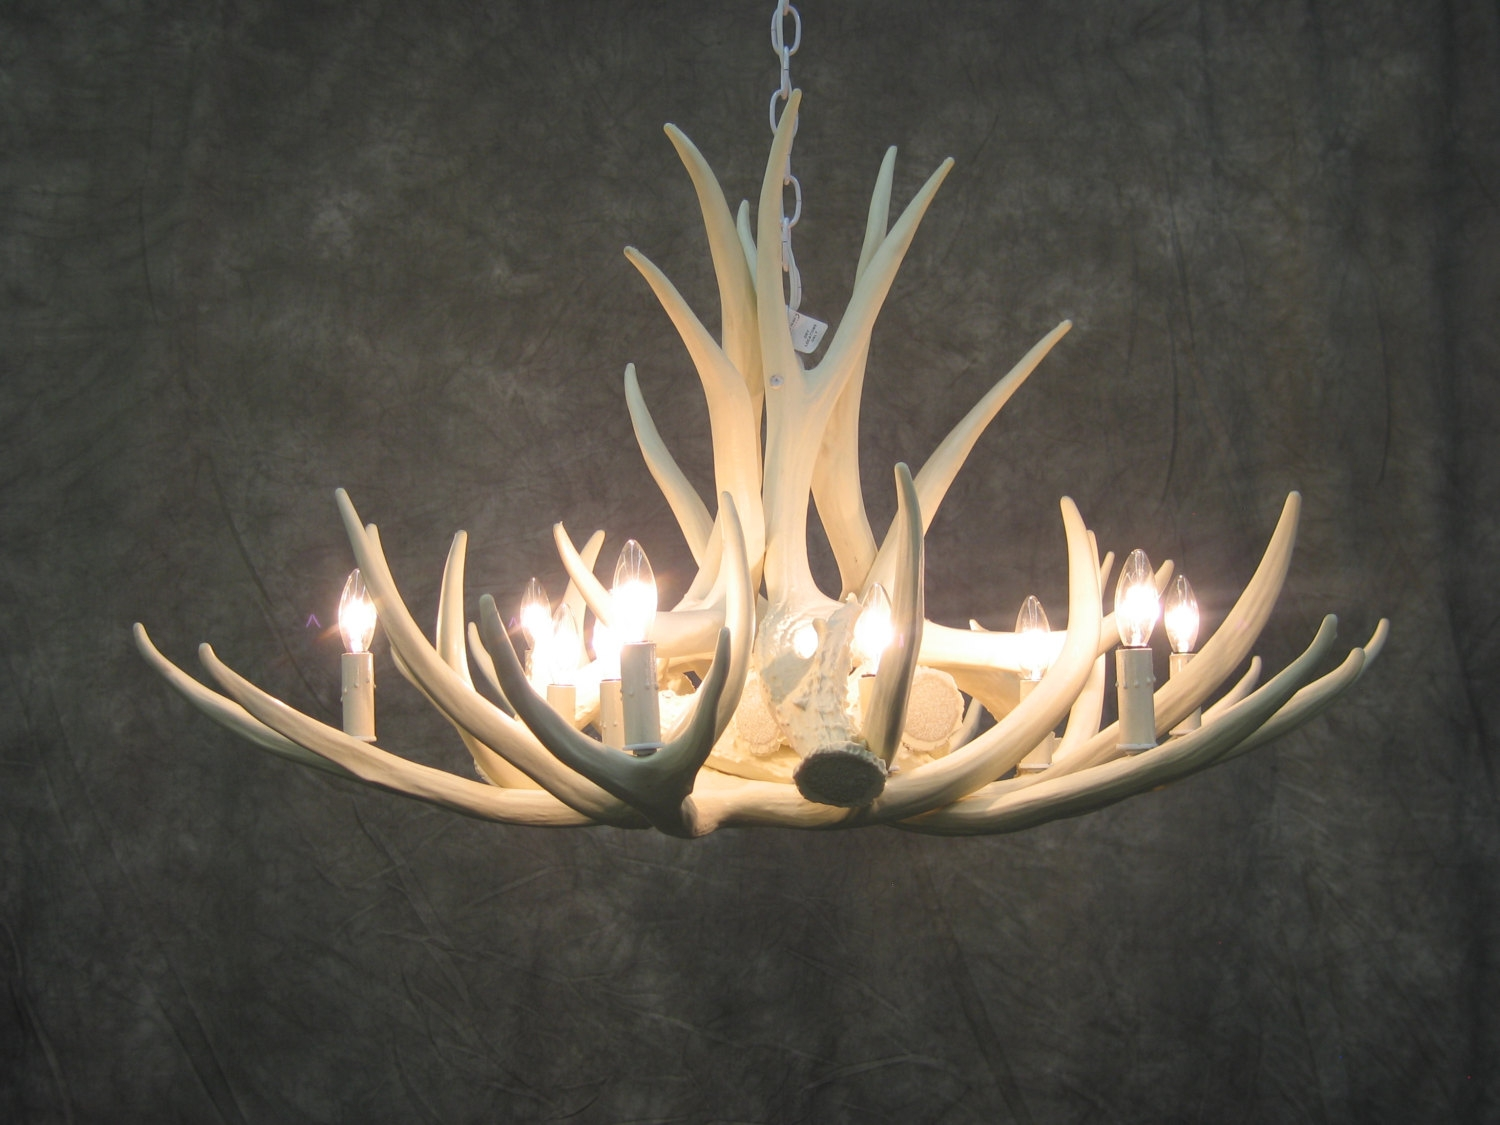 White Antler Chandelier Faux Deer Antler Chandelier D9 Within Modern Antler Chandelier (Image 15 of 15)